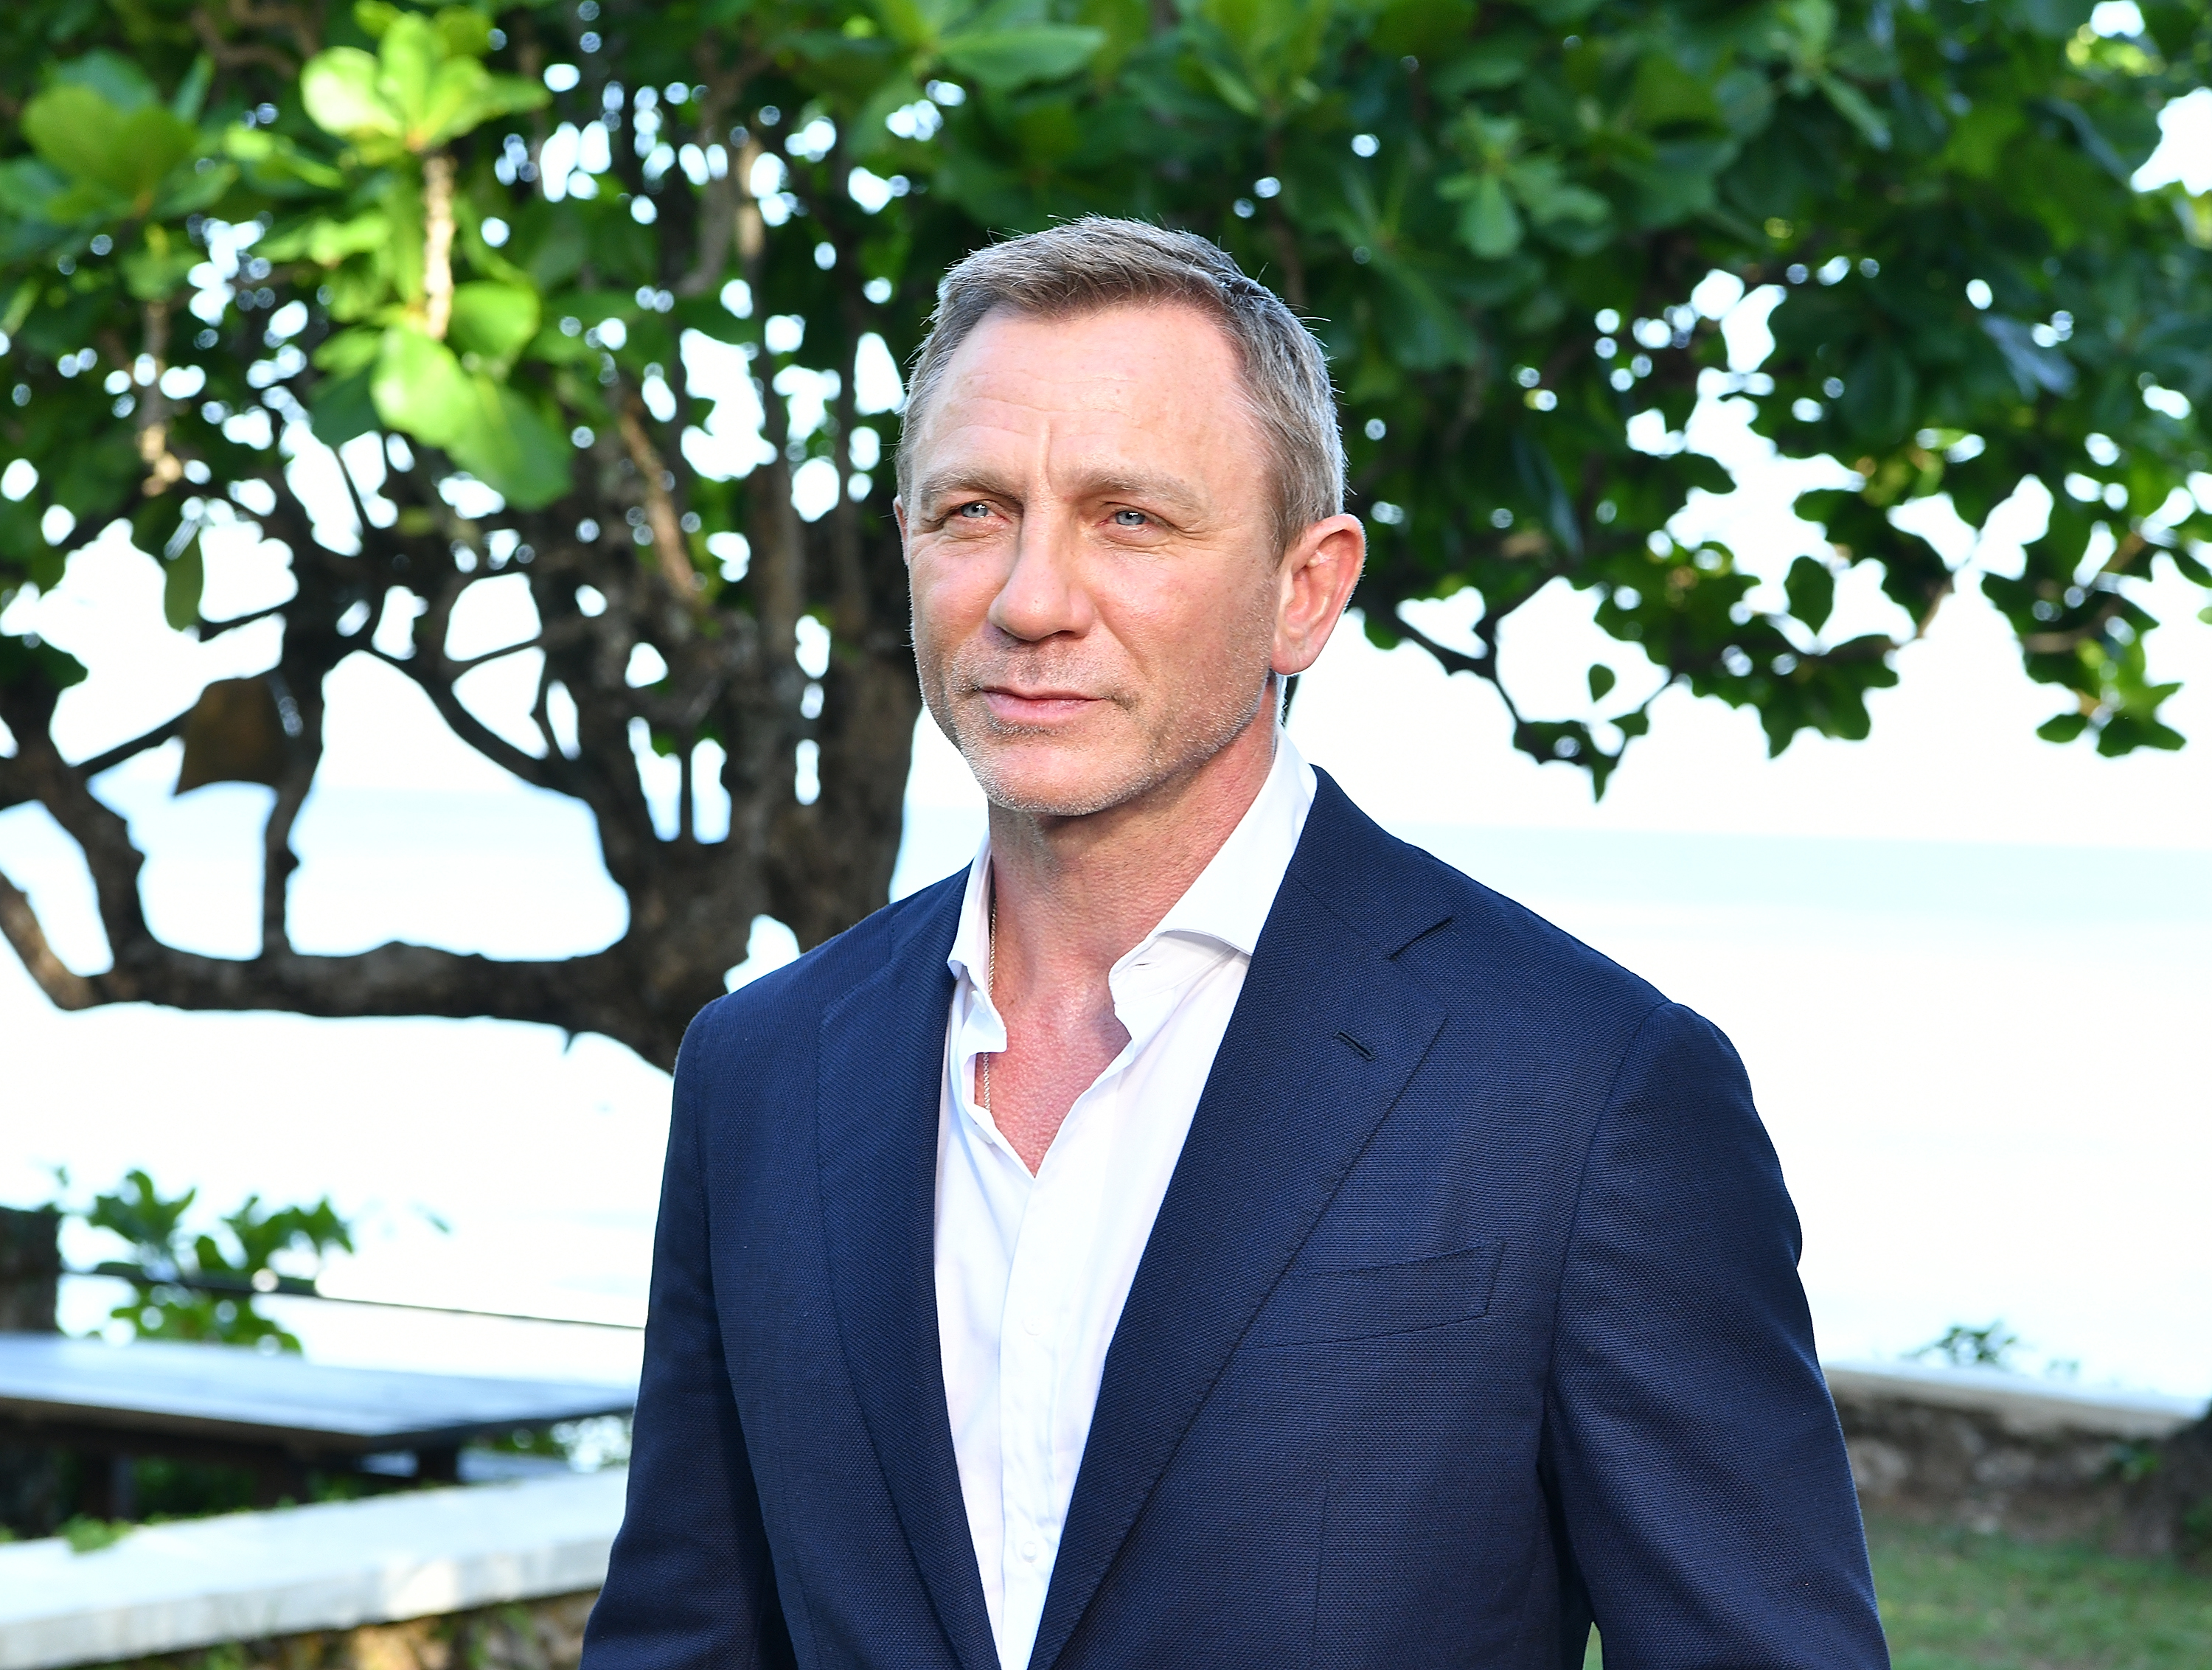 """MONTEGO BAY, JAMAICA - APRIL 25: Actor Daniel Craig attends the """"Bond 25"""" film launch at Ian Fleming's Home 'GoldenEye' on April 25, 2019 in Montego Bay, Jamaica. (Photo by Slaven Vlasic/Getty Images for Metro Goldwyn Mayer Pictures)"""